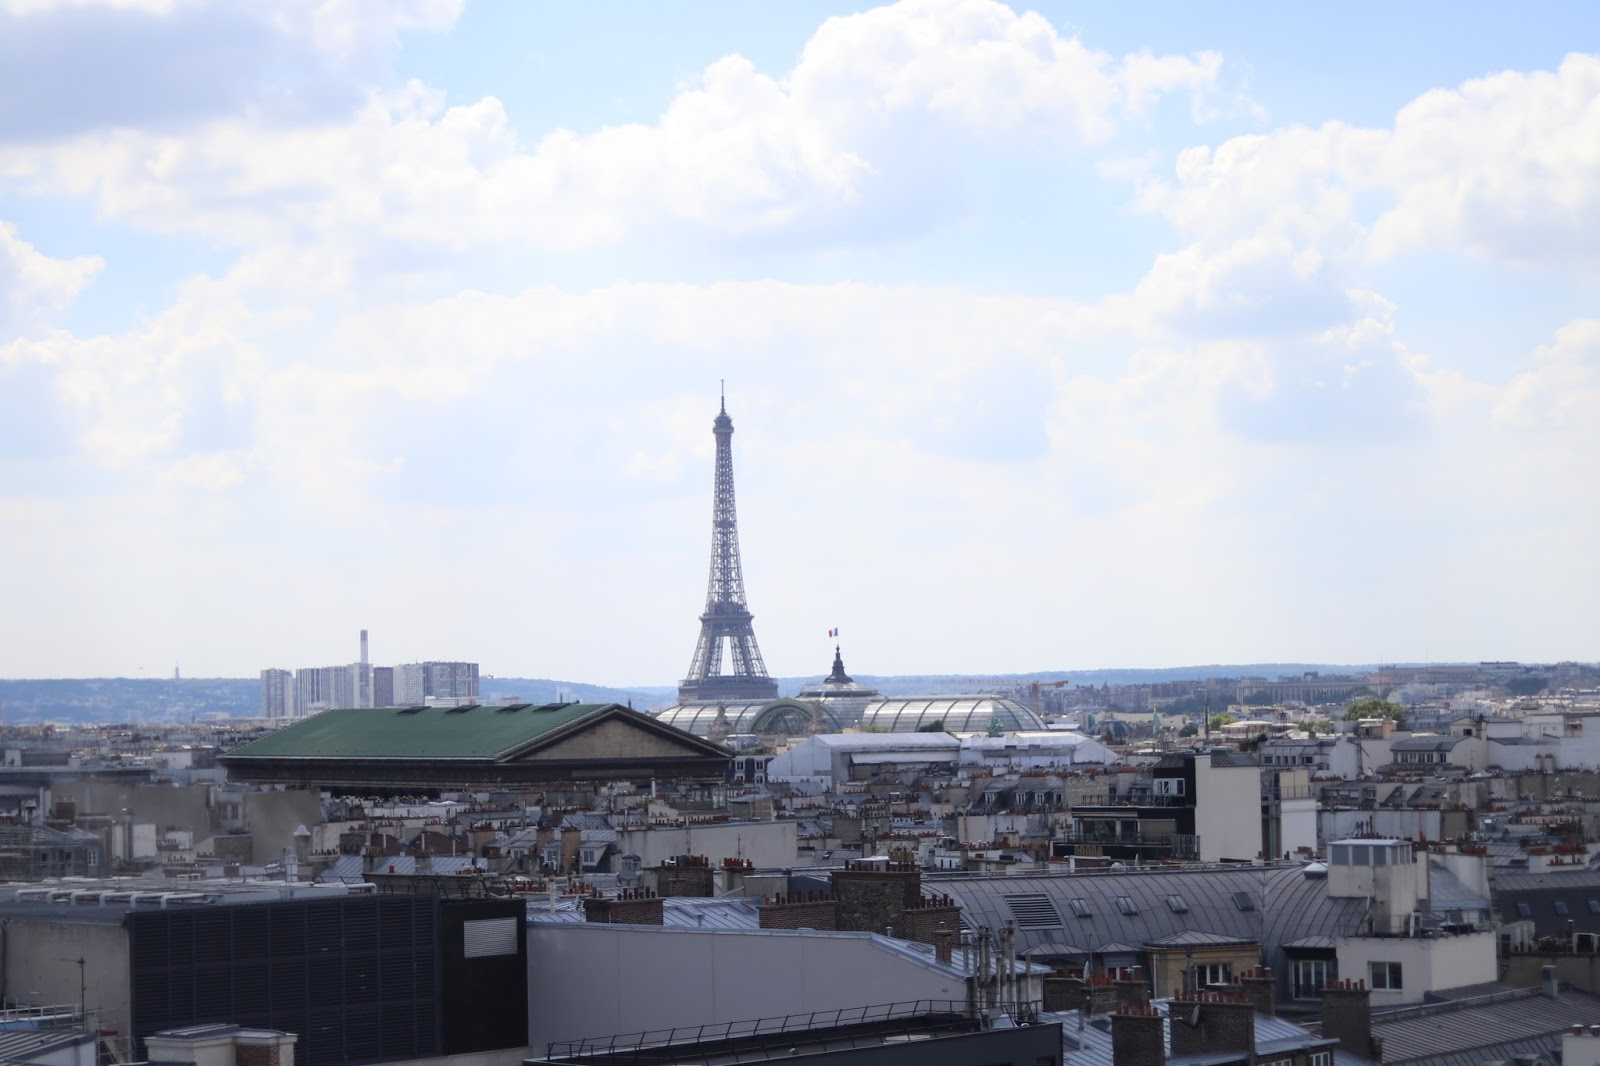 Eiffel Tower from Galeries Lafayette rooftop, Paris, France